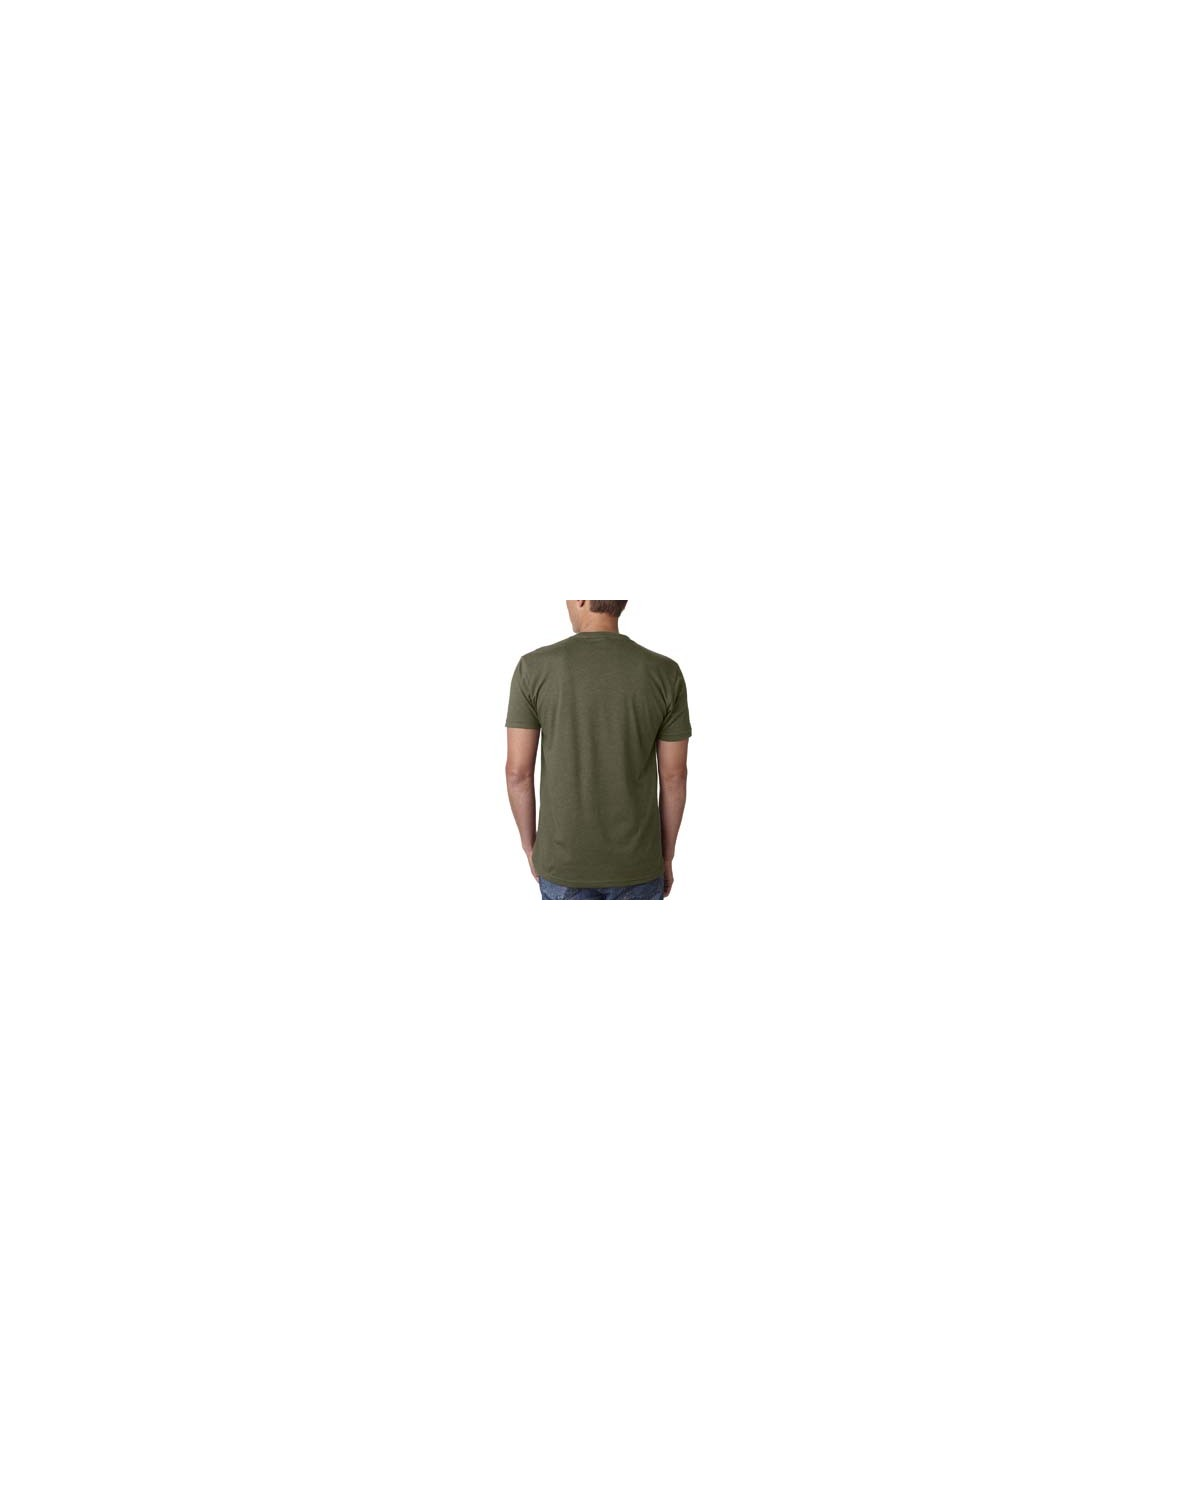 6240 Next Level MILITARY GREEN